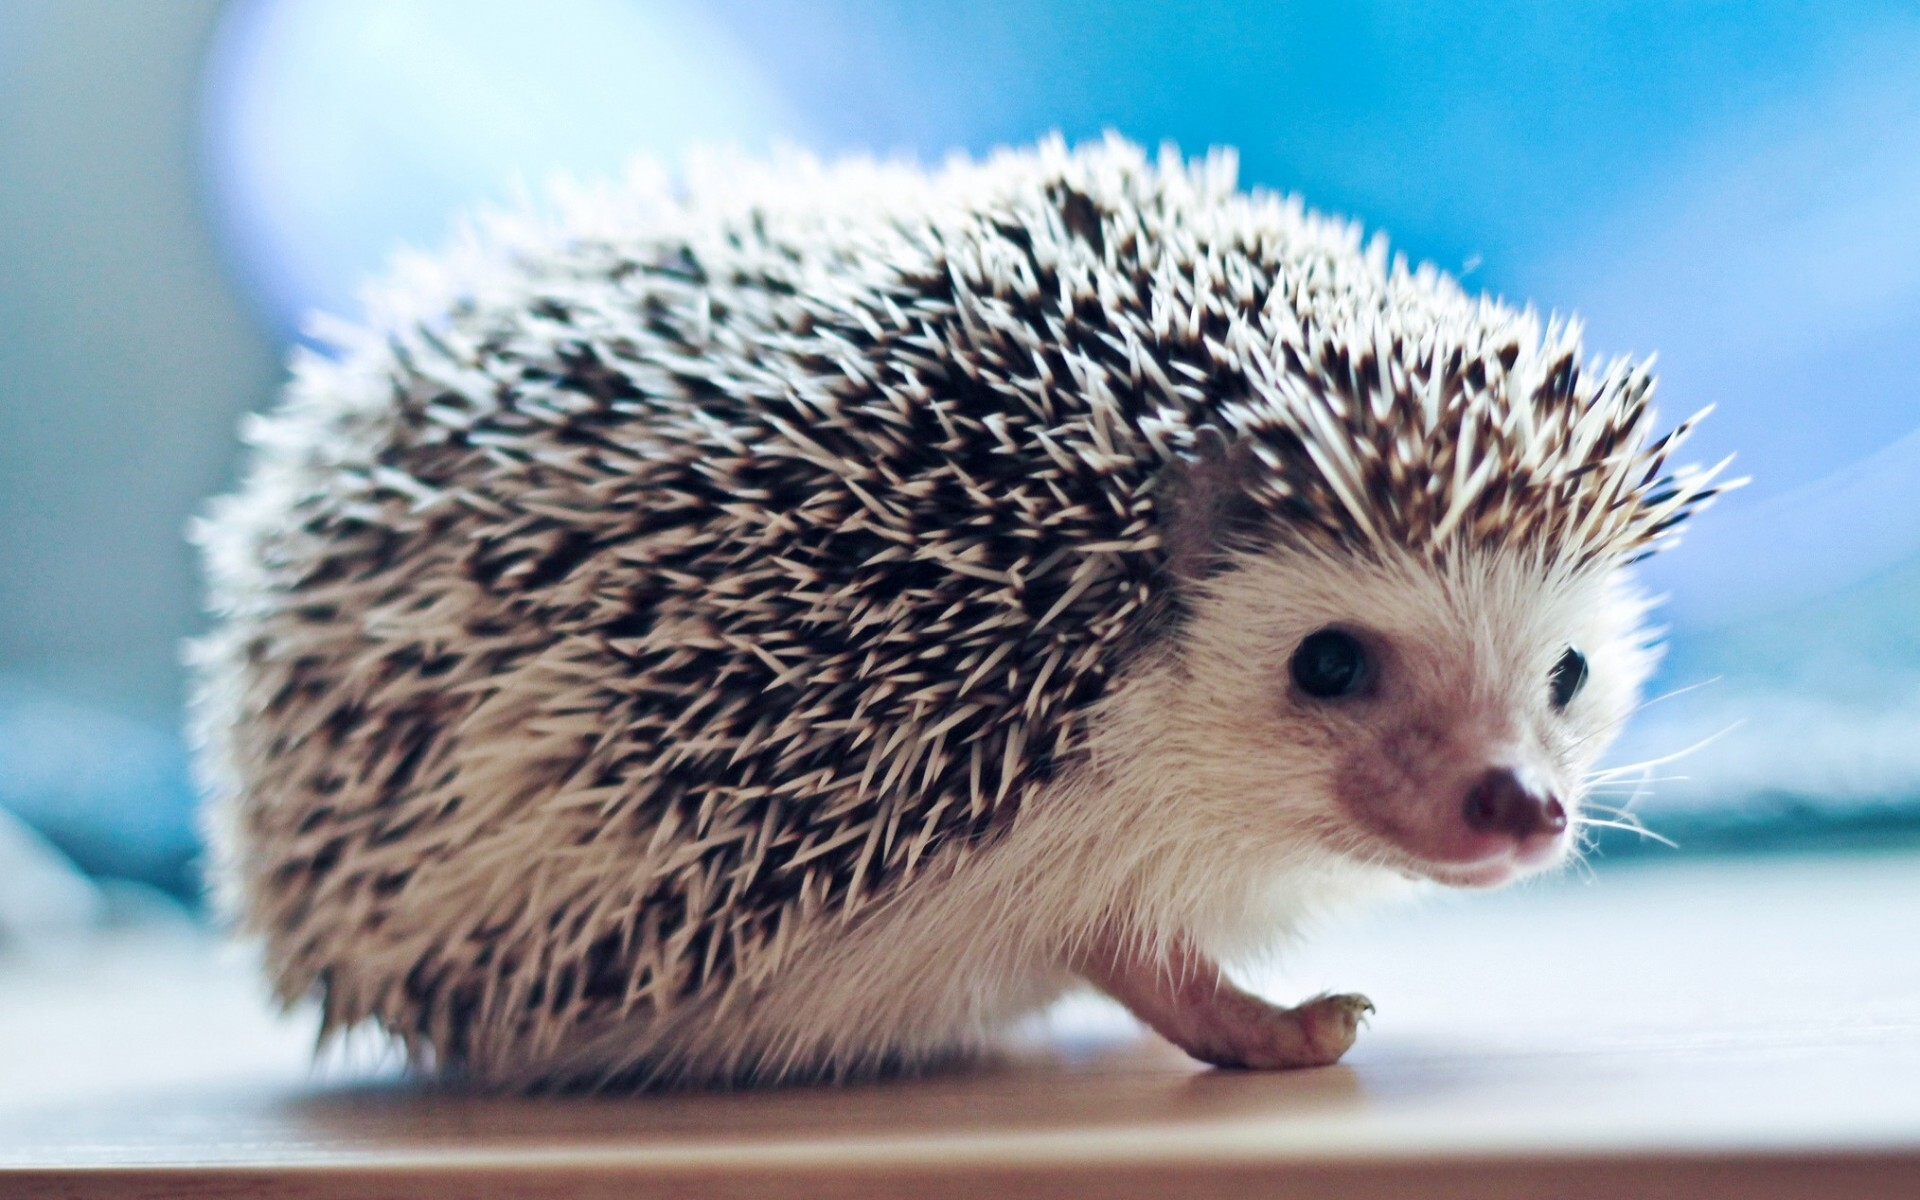 cute hedgehog small animal wallpapers hd wallpapers